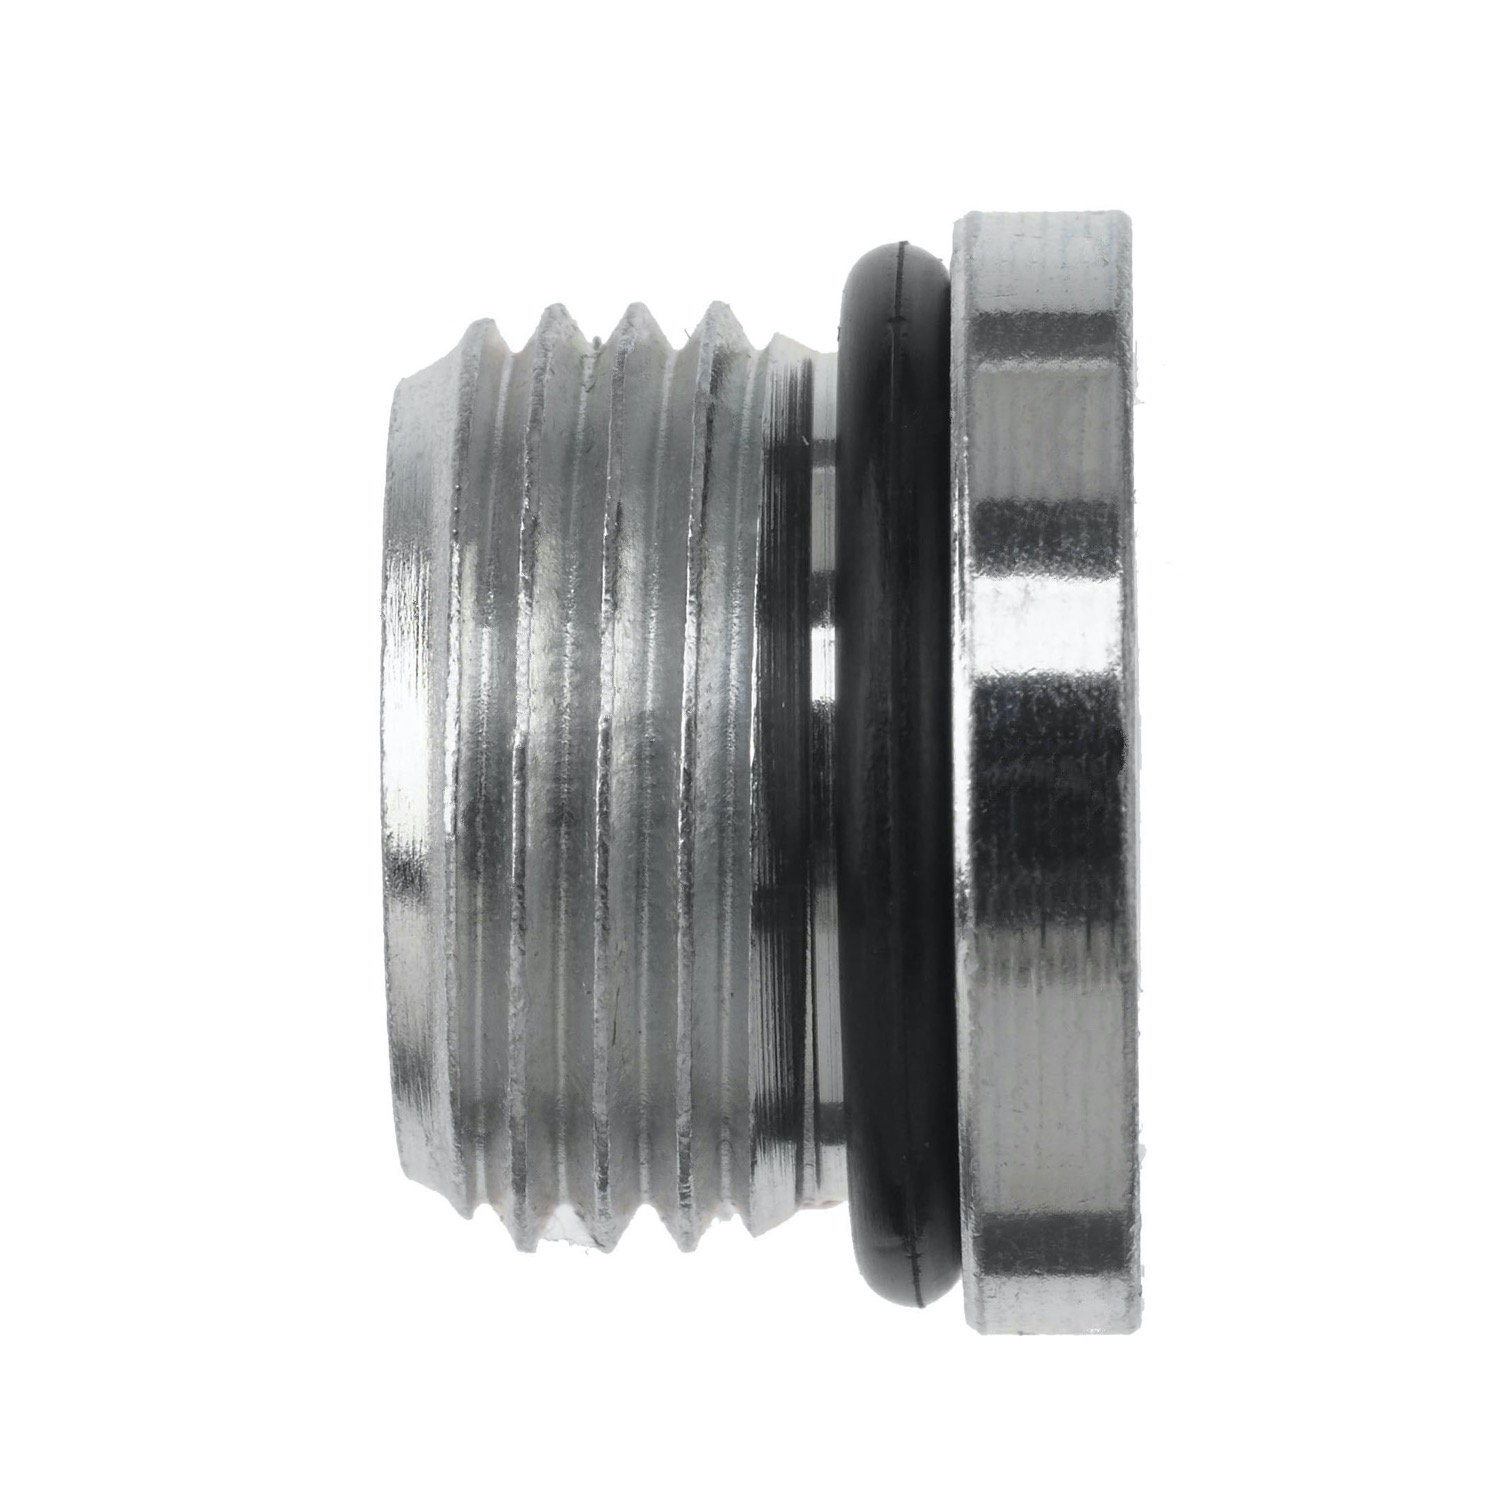 MORB Hollow Hex Plug - 6408-H-O Series (BRENNAN)